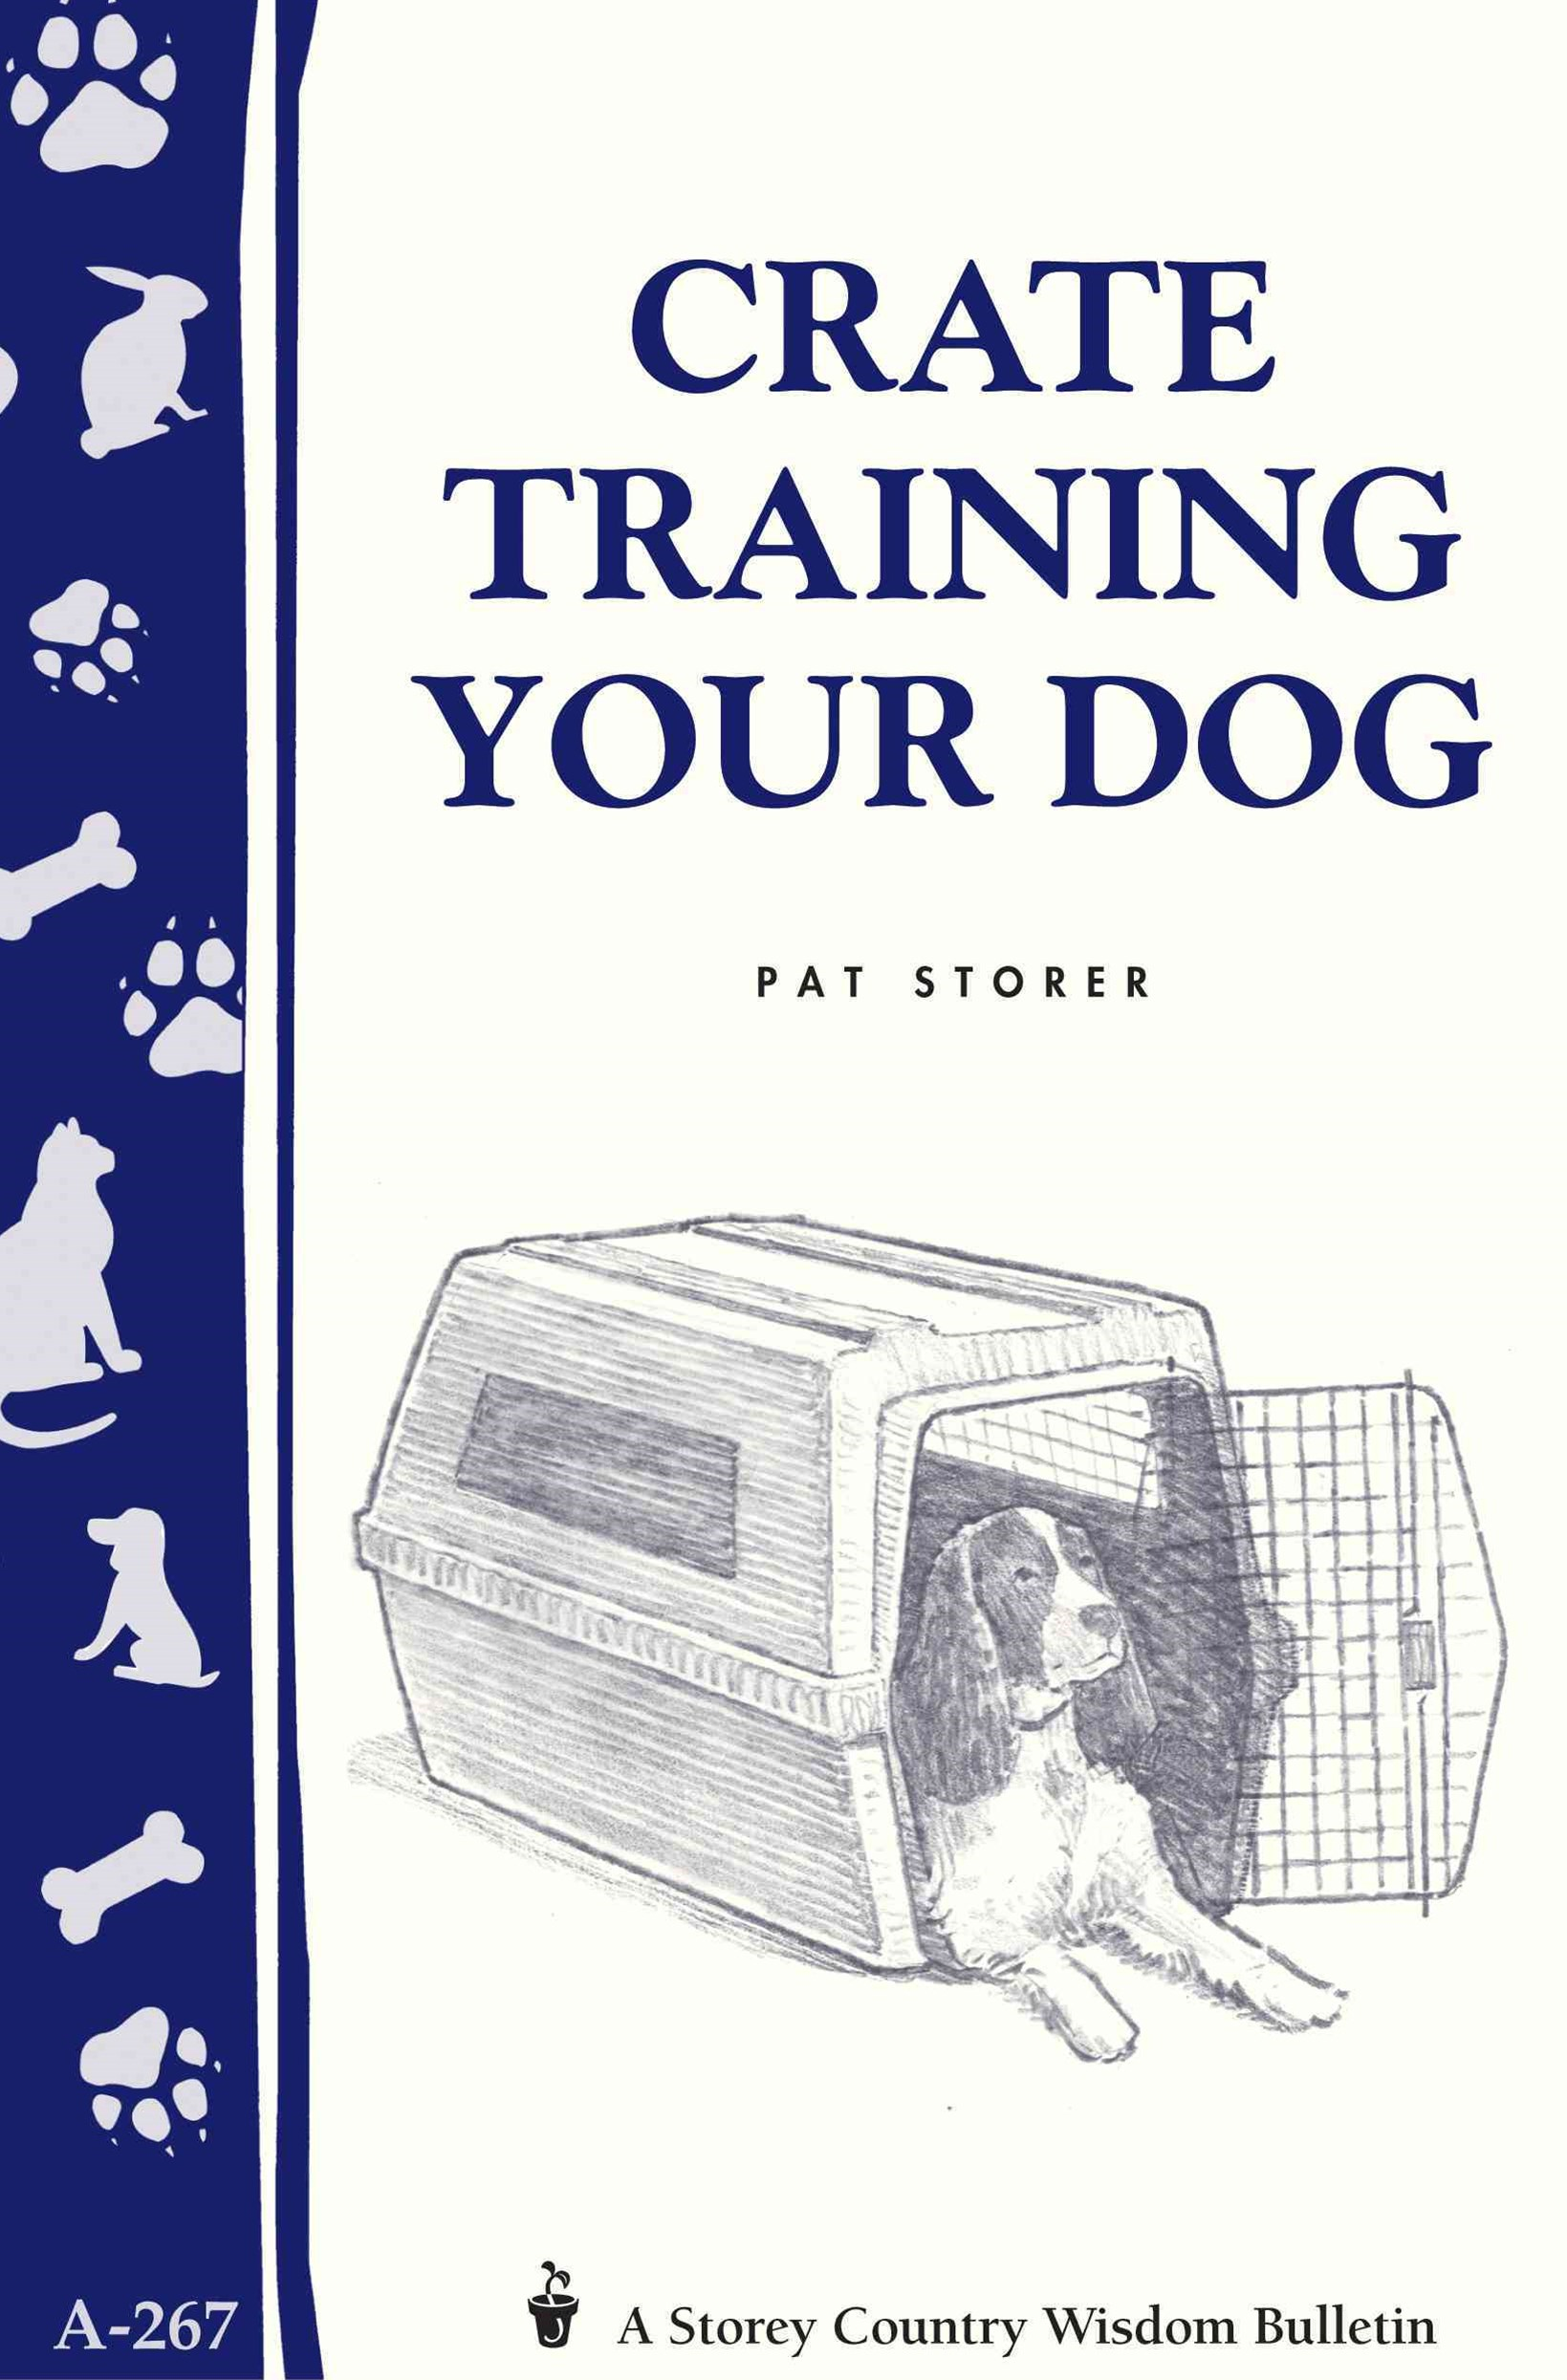 Crate Training Your Dog: Storey's Country Wisdom Bulletin  A.267